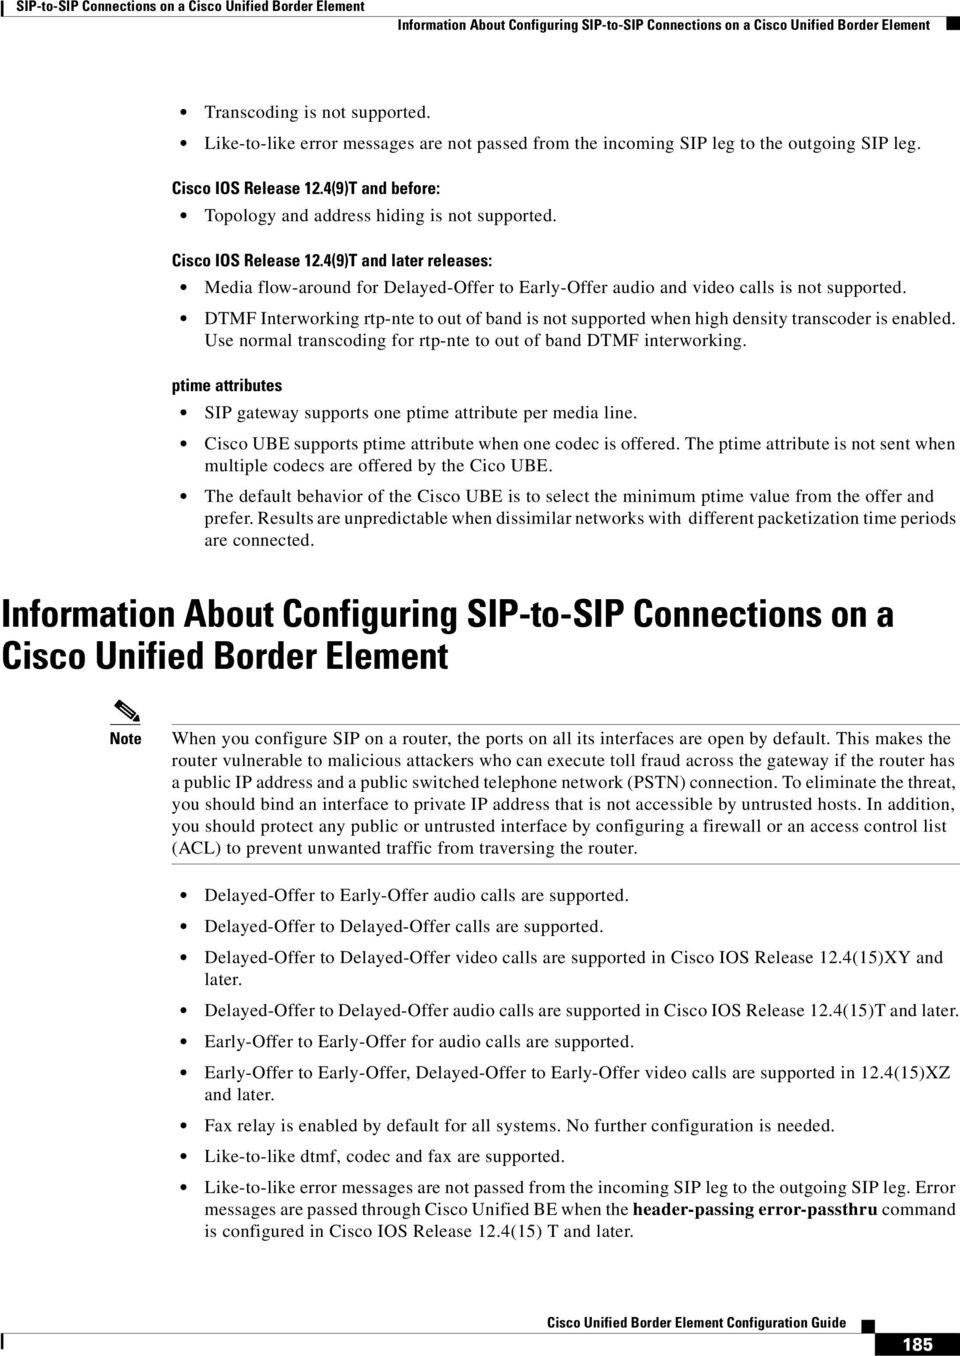 SIP-to-SIP Connections on a Cisco Unified Border Element - PDF